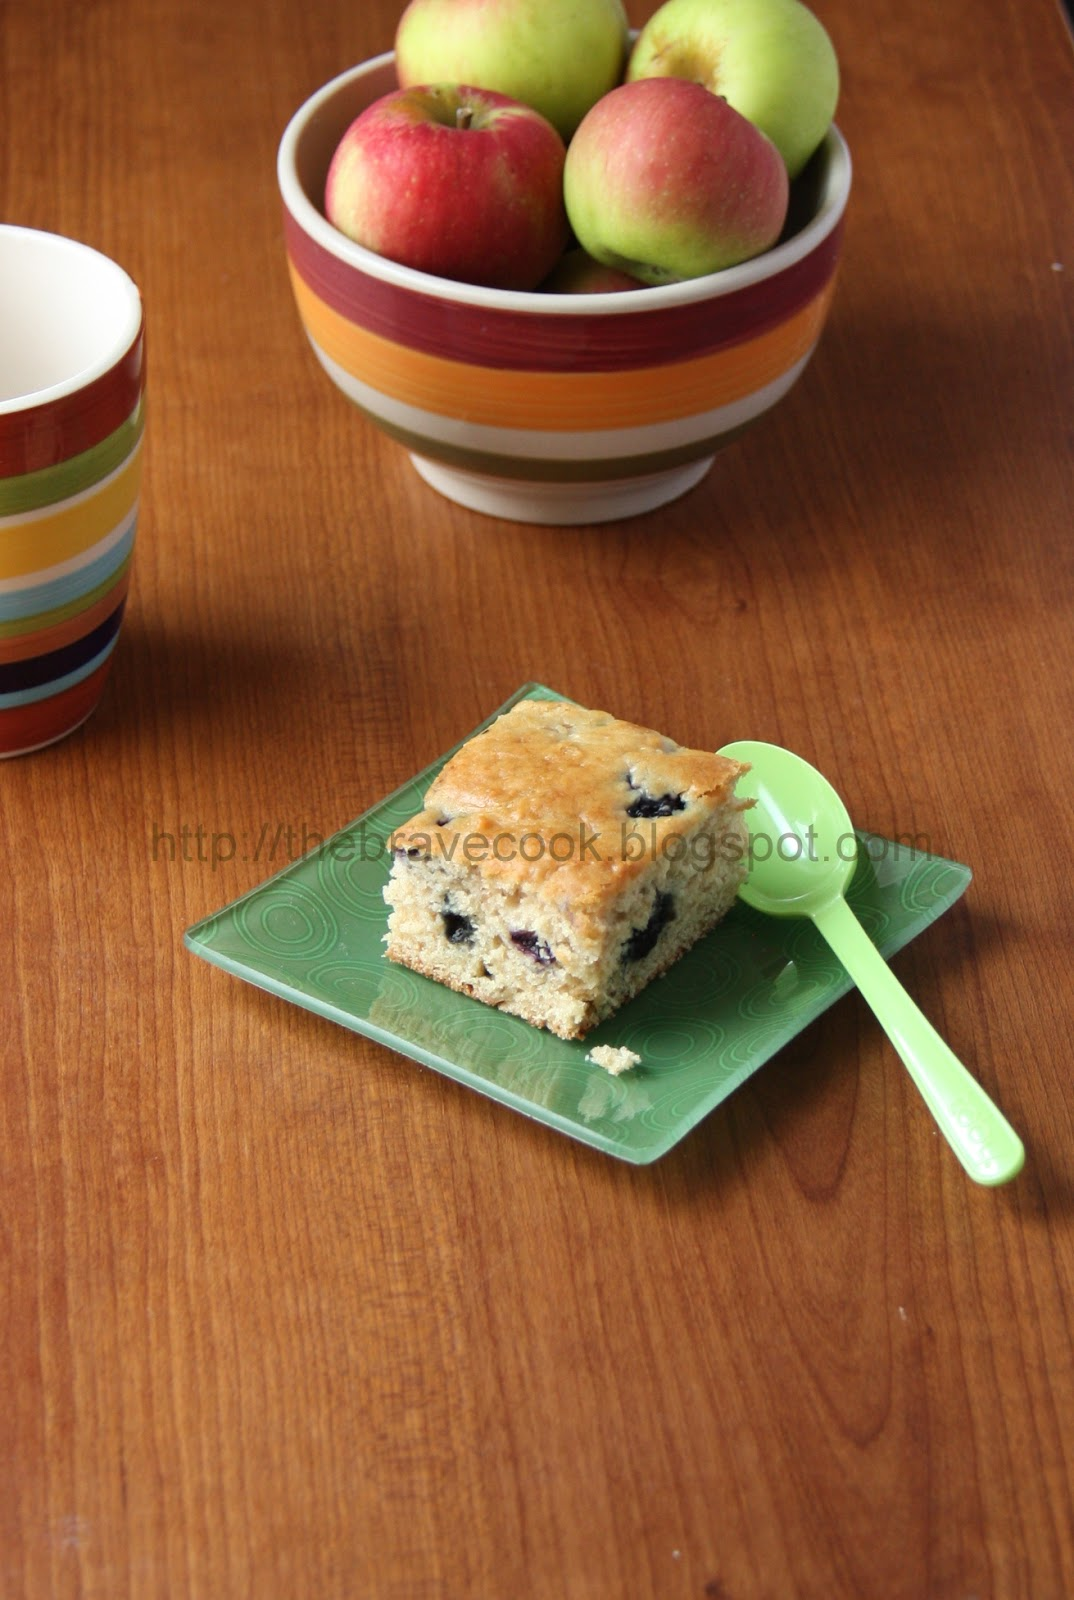 how to make a simple cake at home without oven